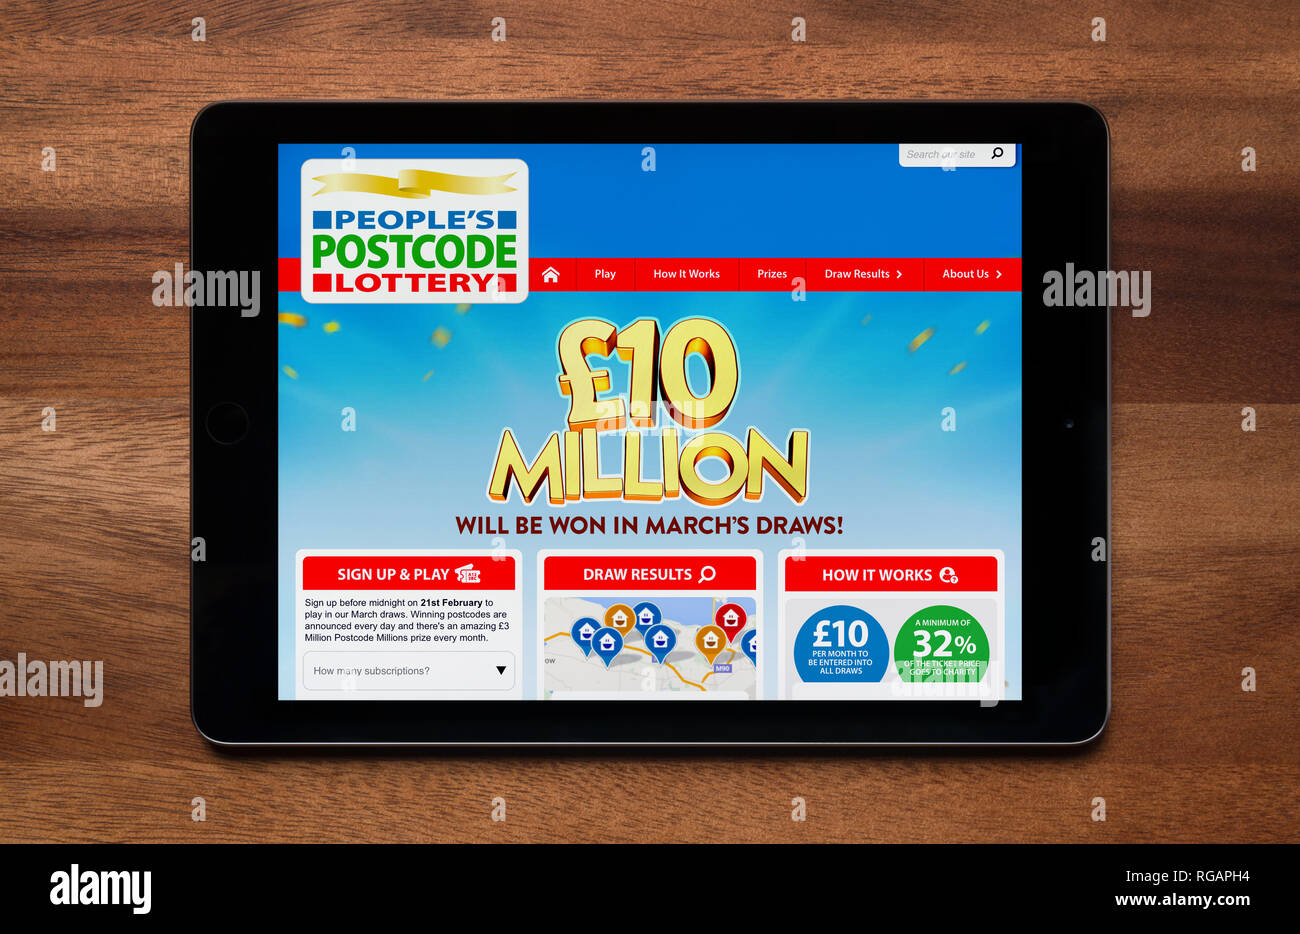 The website of People's Postcode Lottery is seen on an iPad tablet, which is resting on a wooden table (Editorial use only). - Stock Image